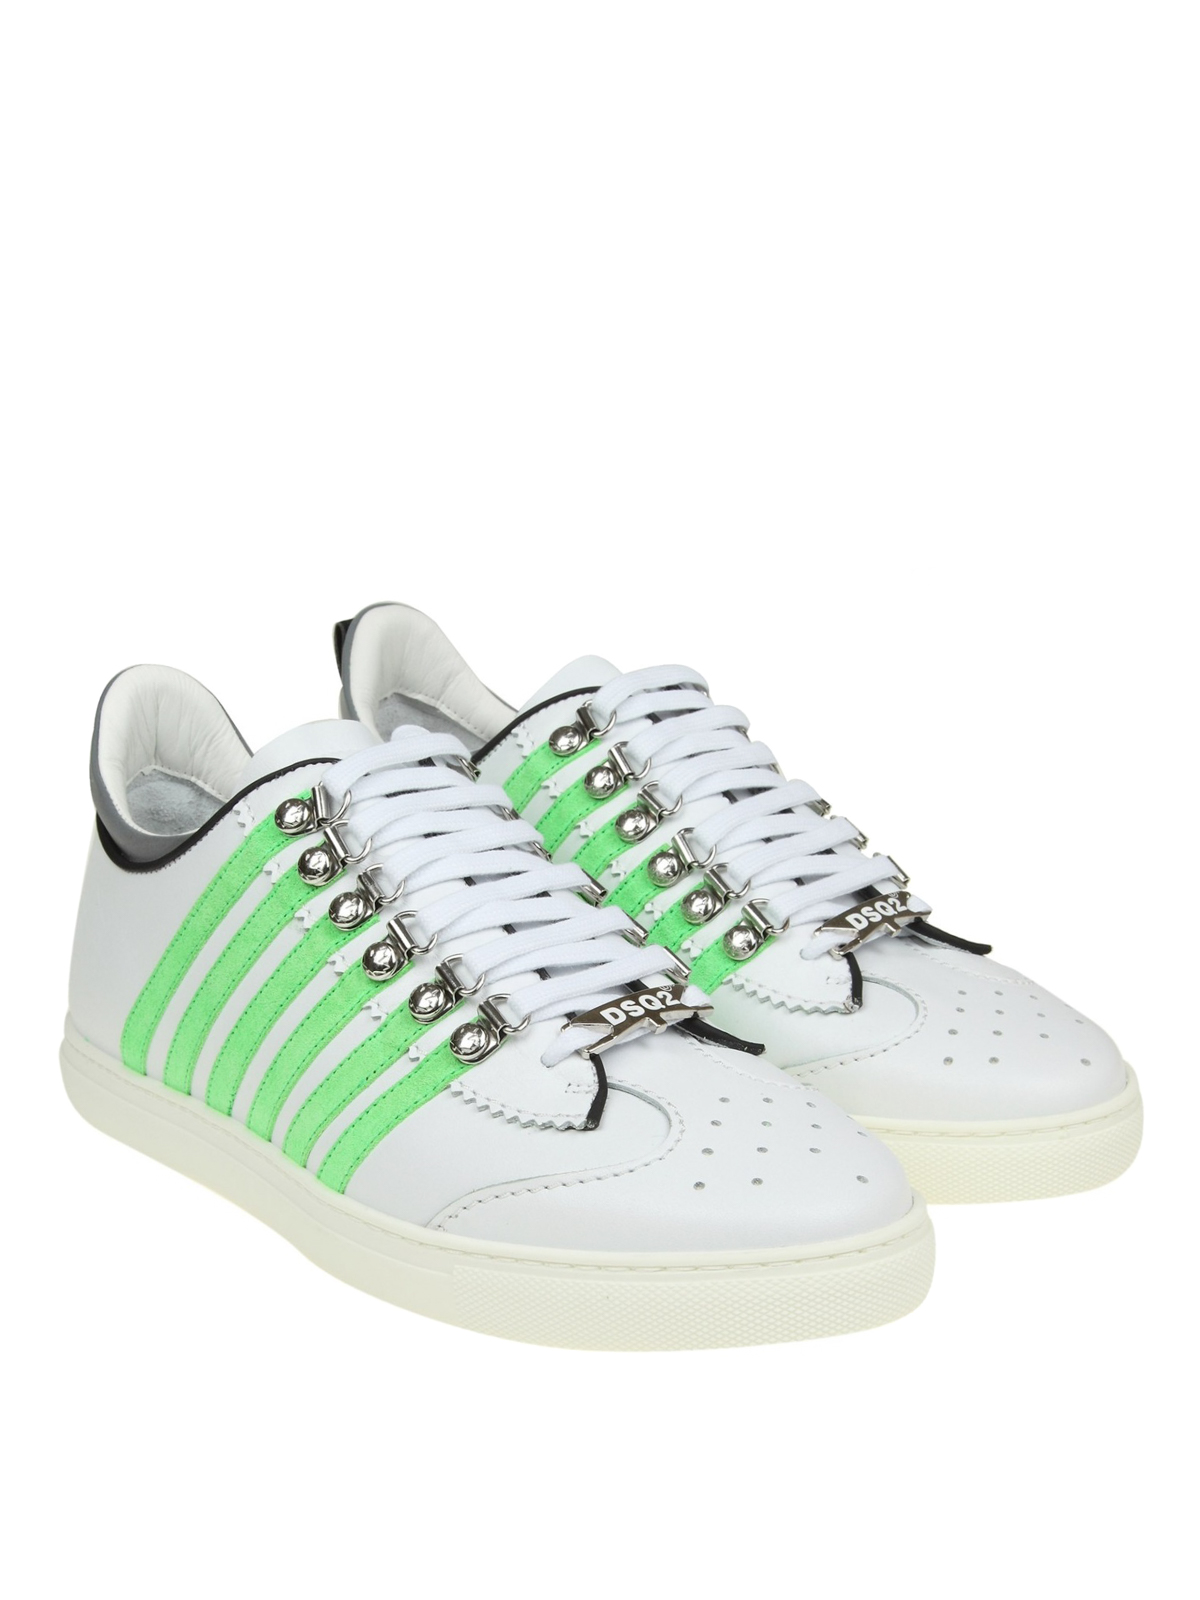 251 sneakers with green stripes